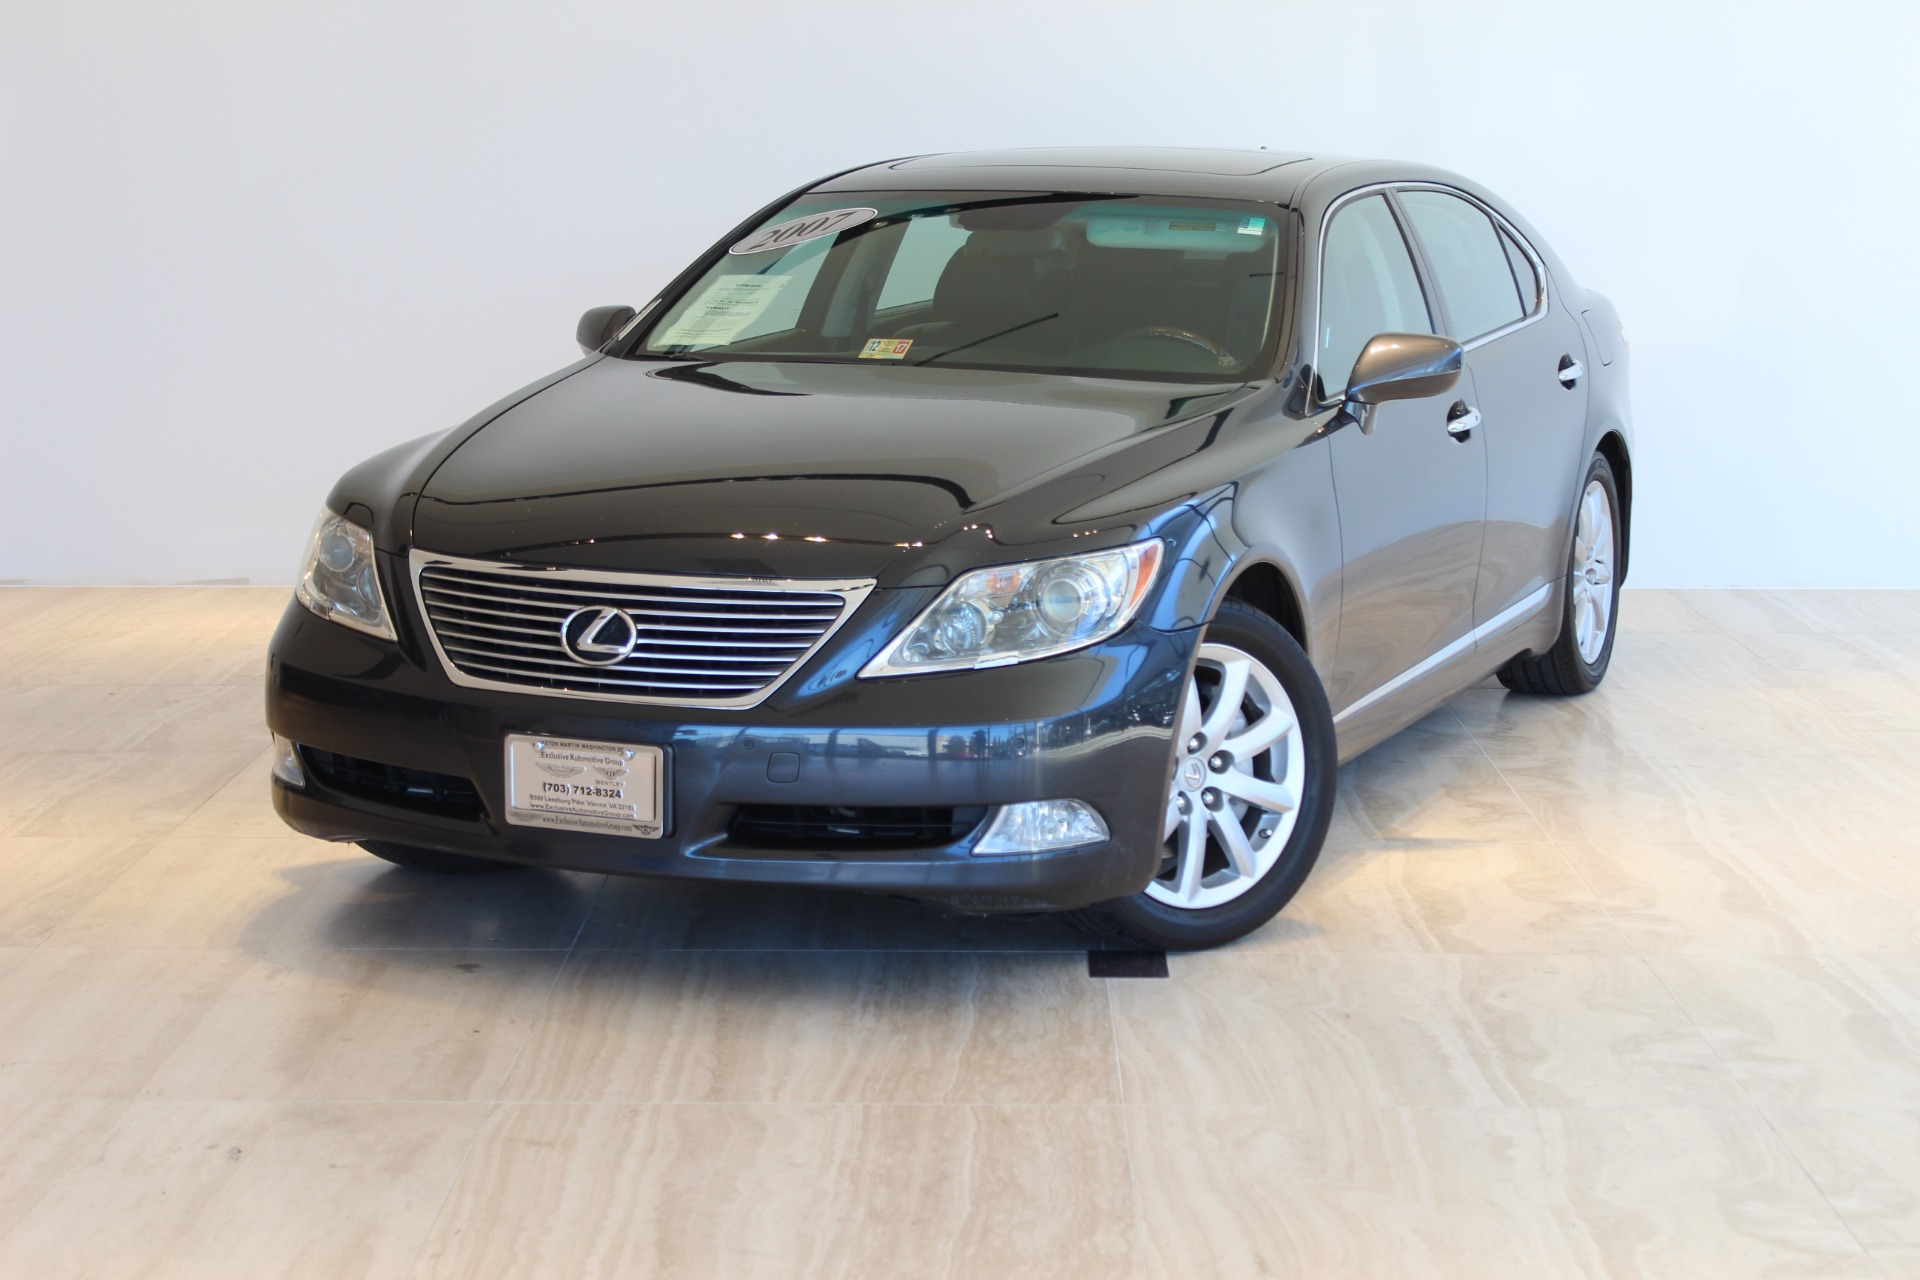 2007 lexus ls 460 l stock 5nc050691d for sale near vienna va va lexus dealer for sale in. Black Bedroom Furniture Sets. Home Design Ideas